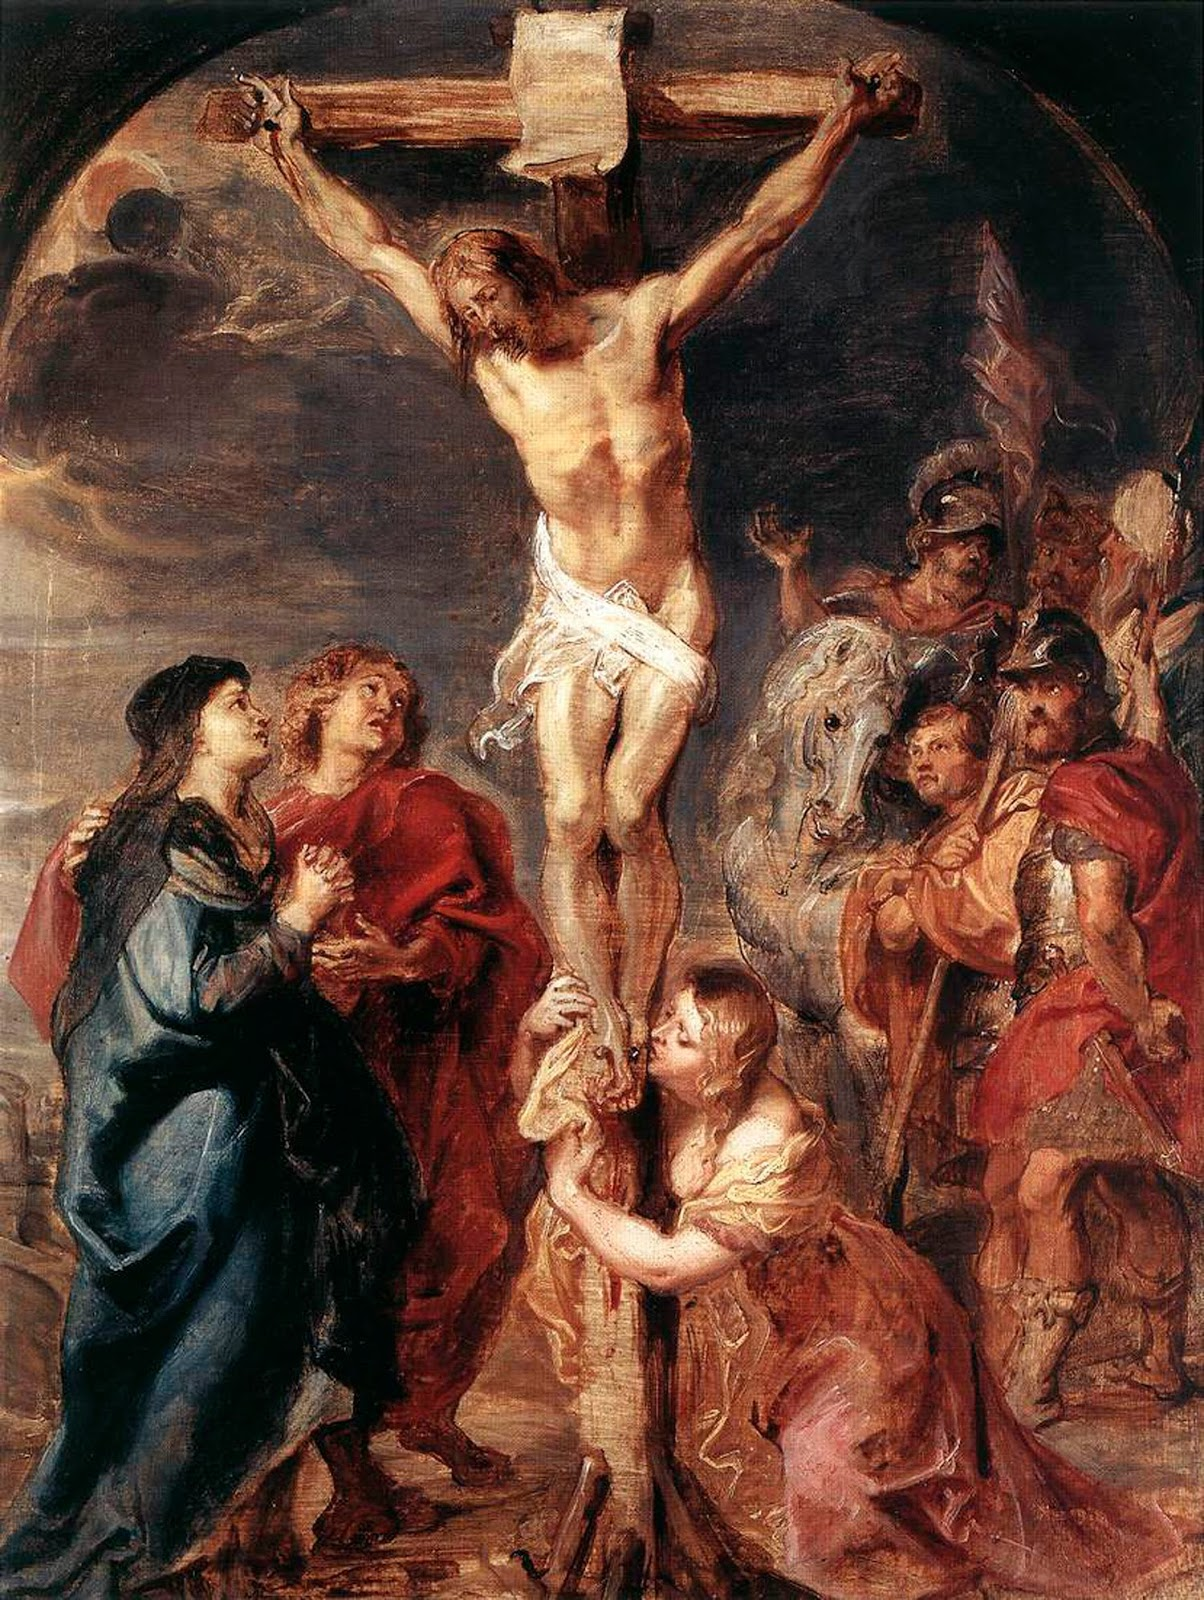 When we were in primary four, our form teacher, Mrs. Annie Chan, told us the story of Jesus Christ being tortured, scourged and finally crucified.